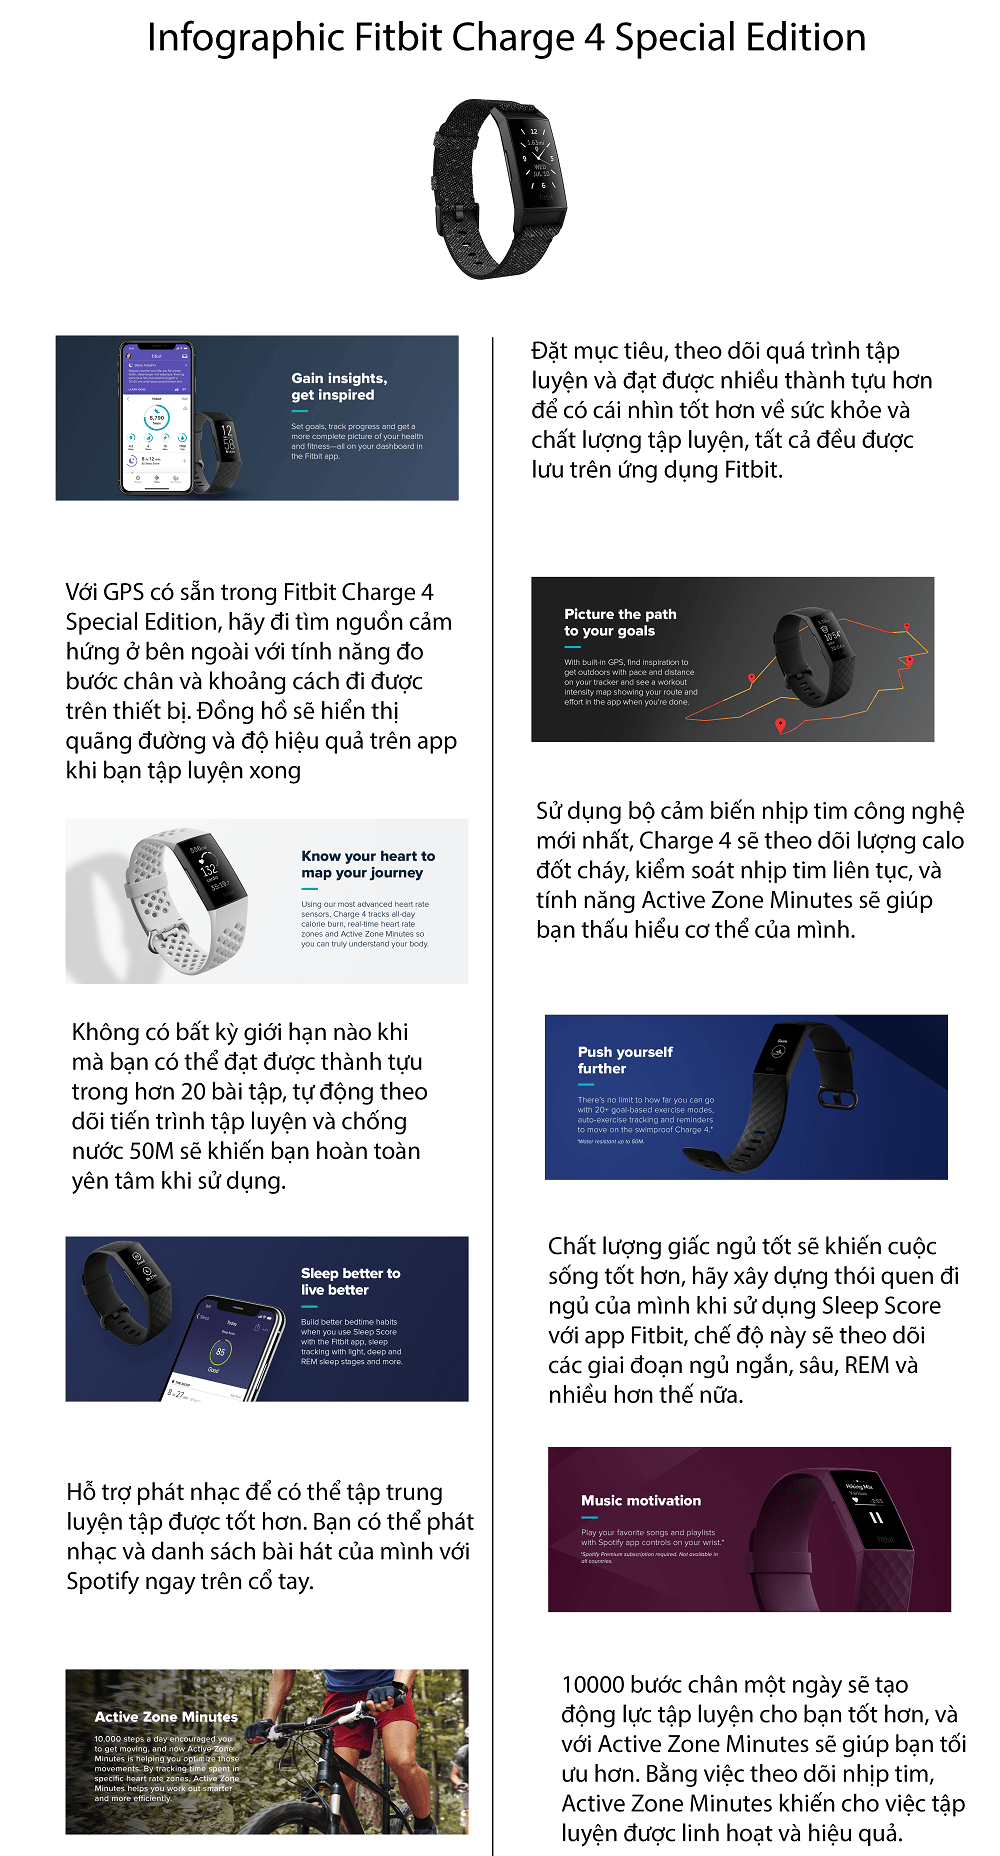 Infographic Fitbit Charge 4 Special Edition